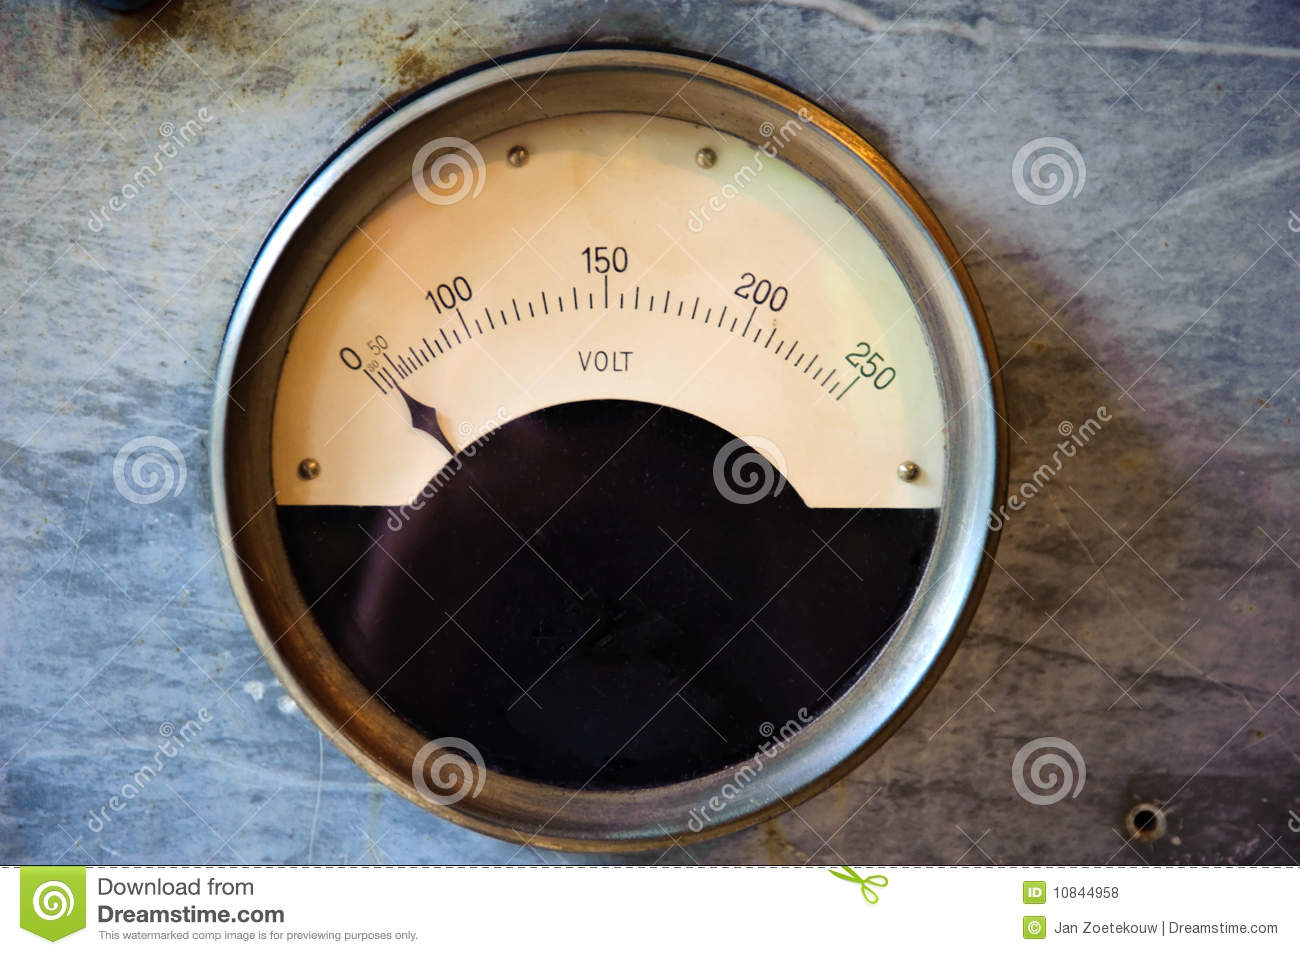 Commercial Electric Volt Meters : Old volt meter royalty free stock photos image